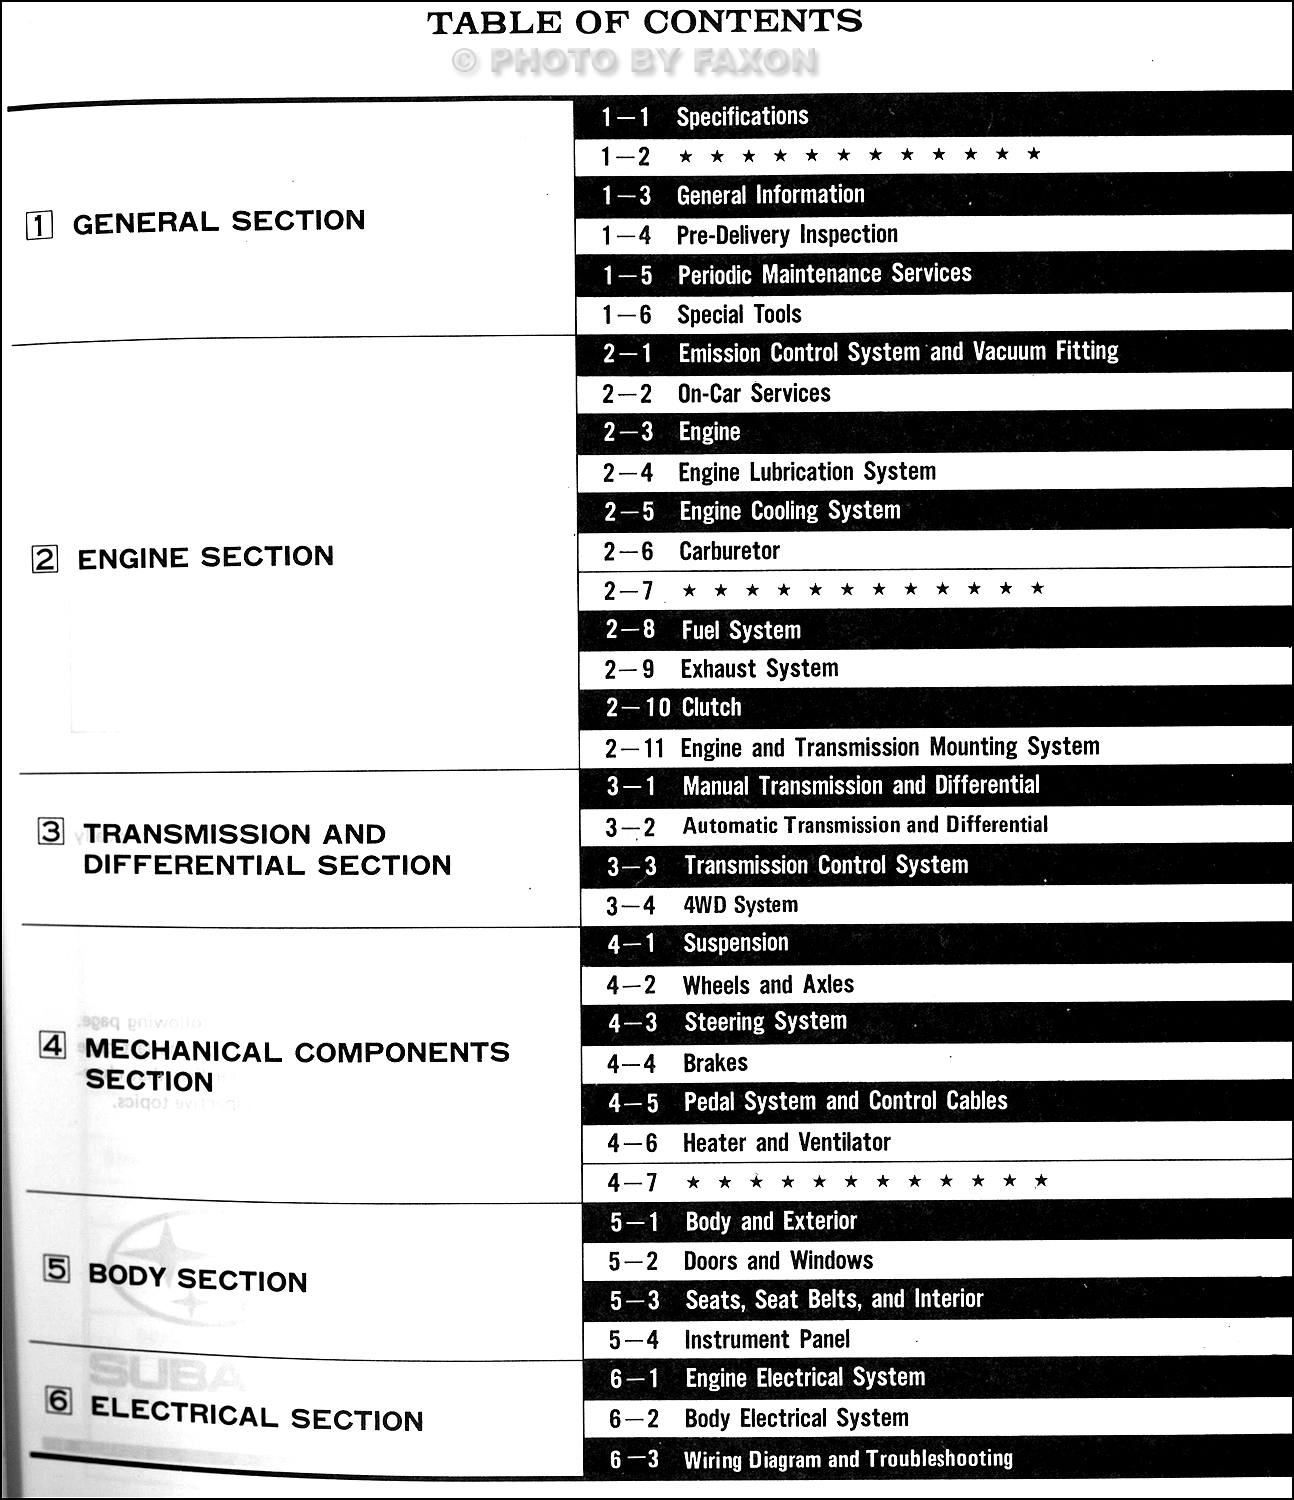 1988 subaru justy repair manual original � table of contents